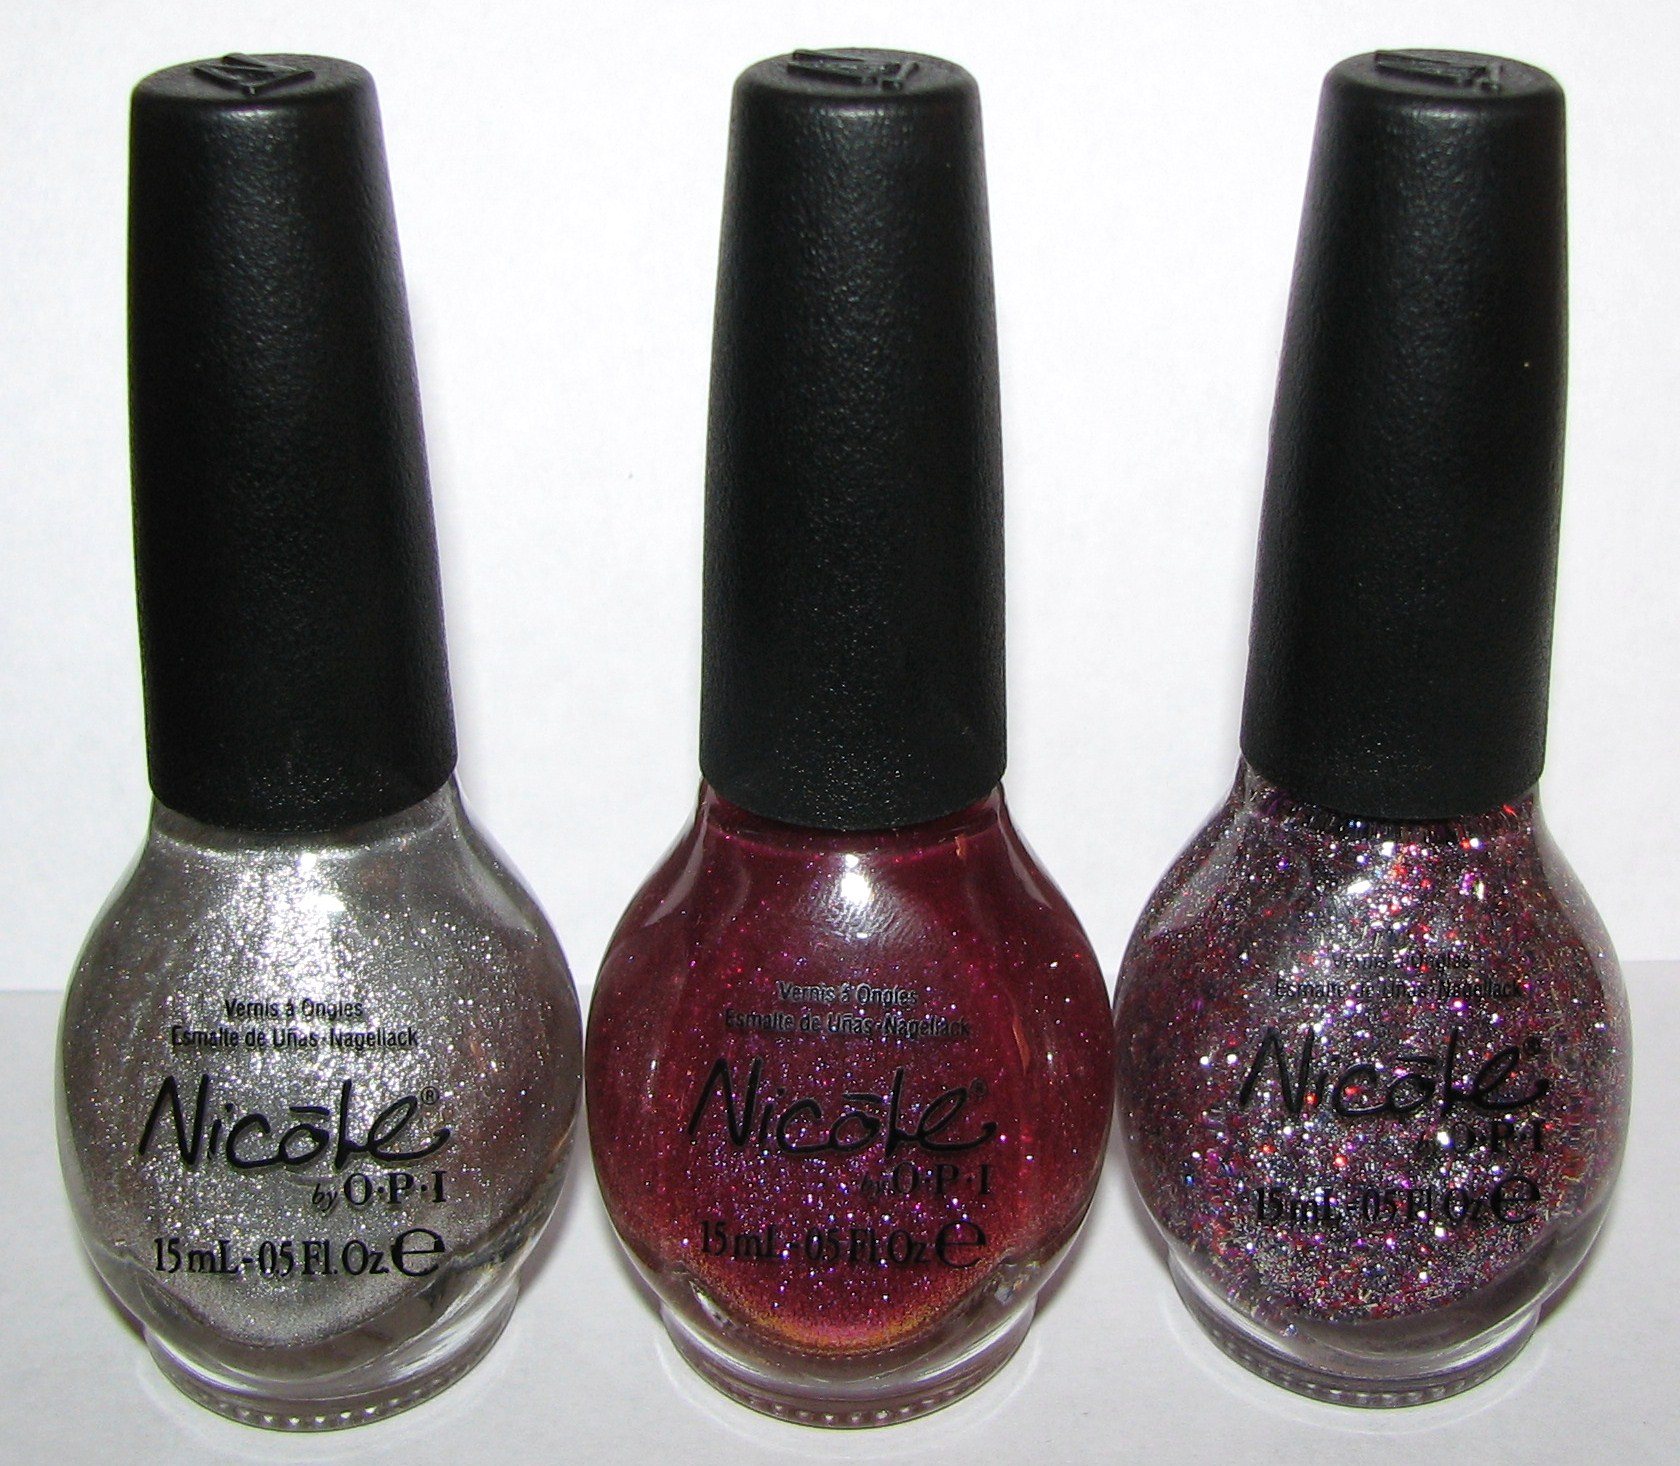 Nicole by OPI Nail Polish Walmart Exclusives for 2012 Swatches and ...